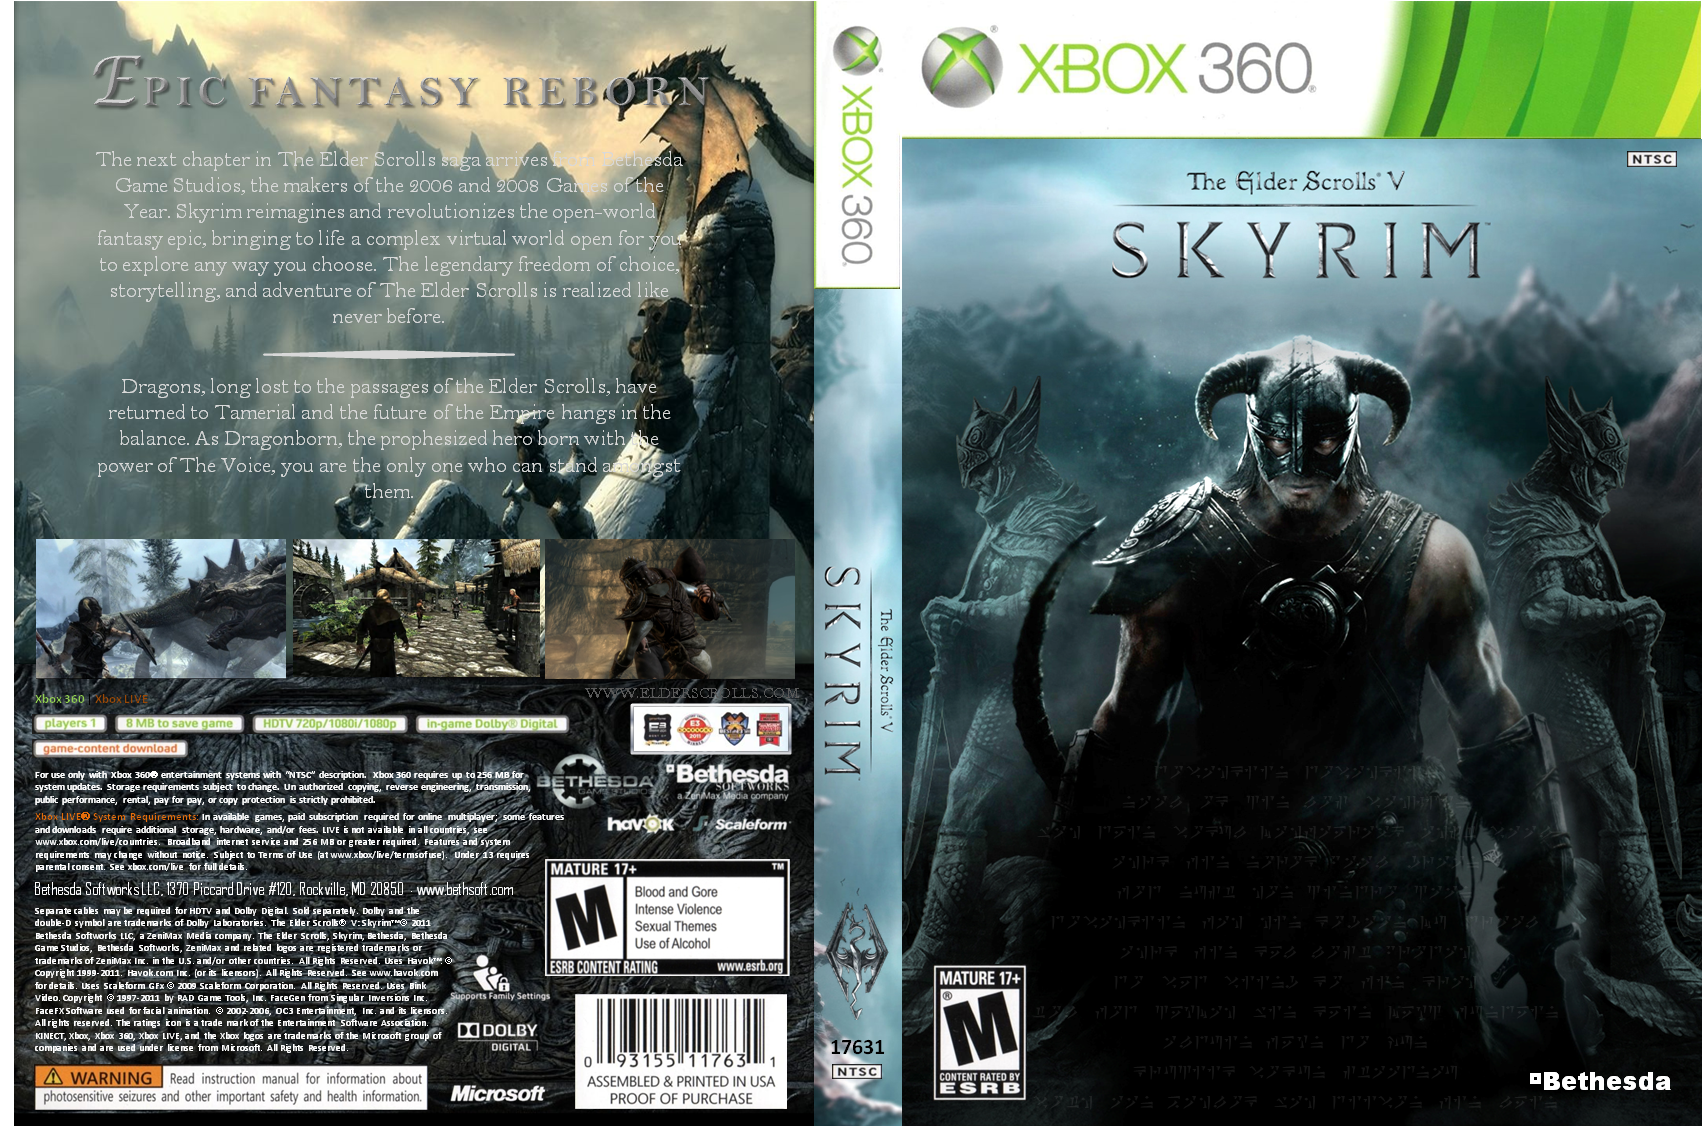 The Elder Scrolls V: Skyrim Xbox 360 Box Art Cover by ironwill8